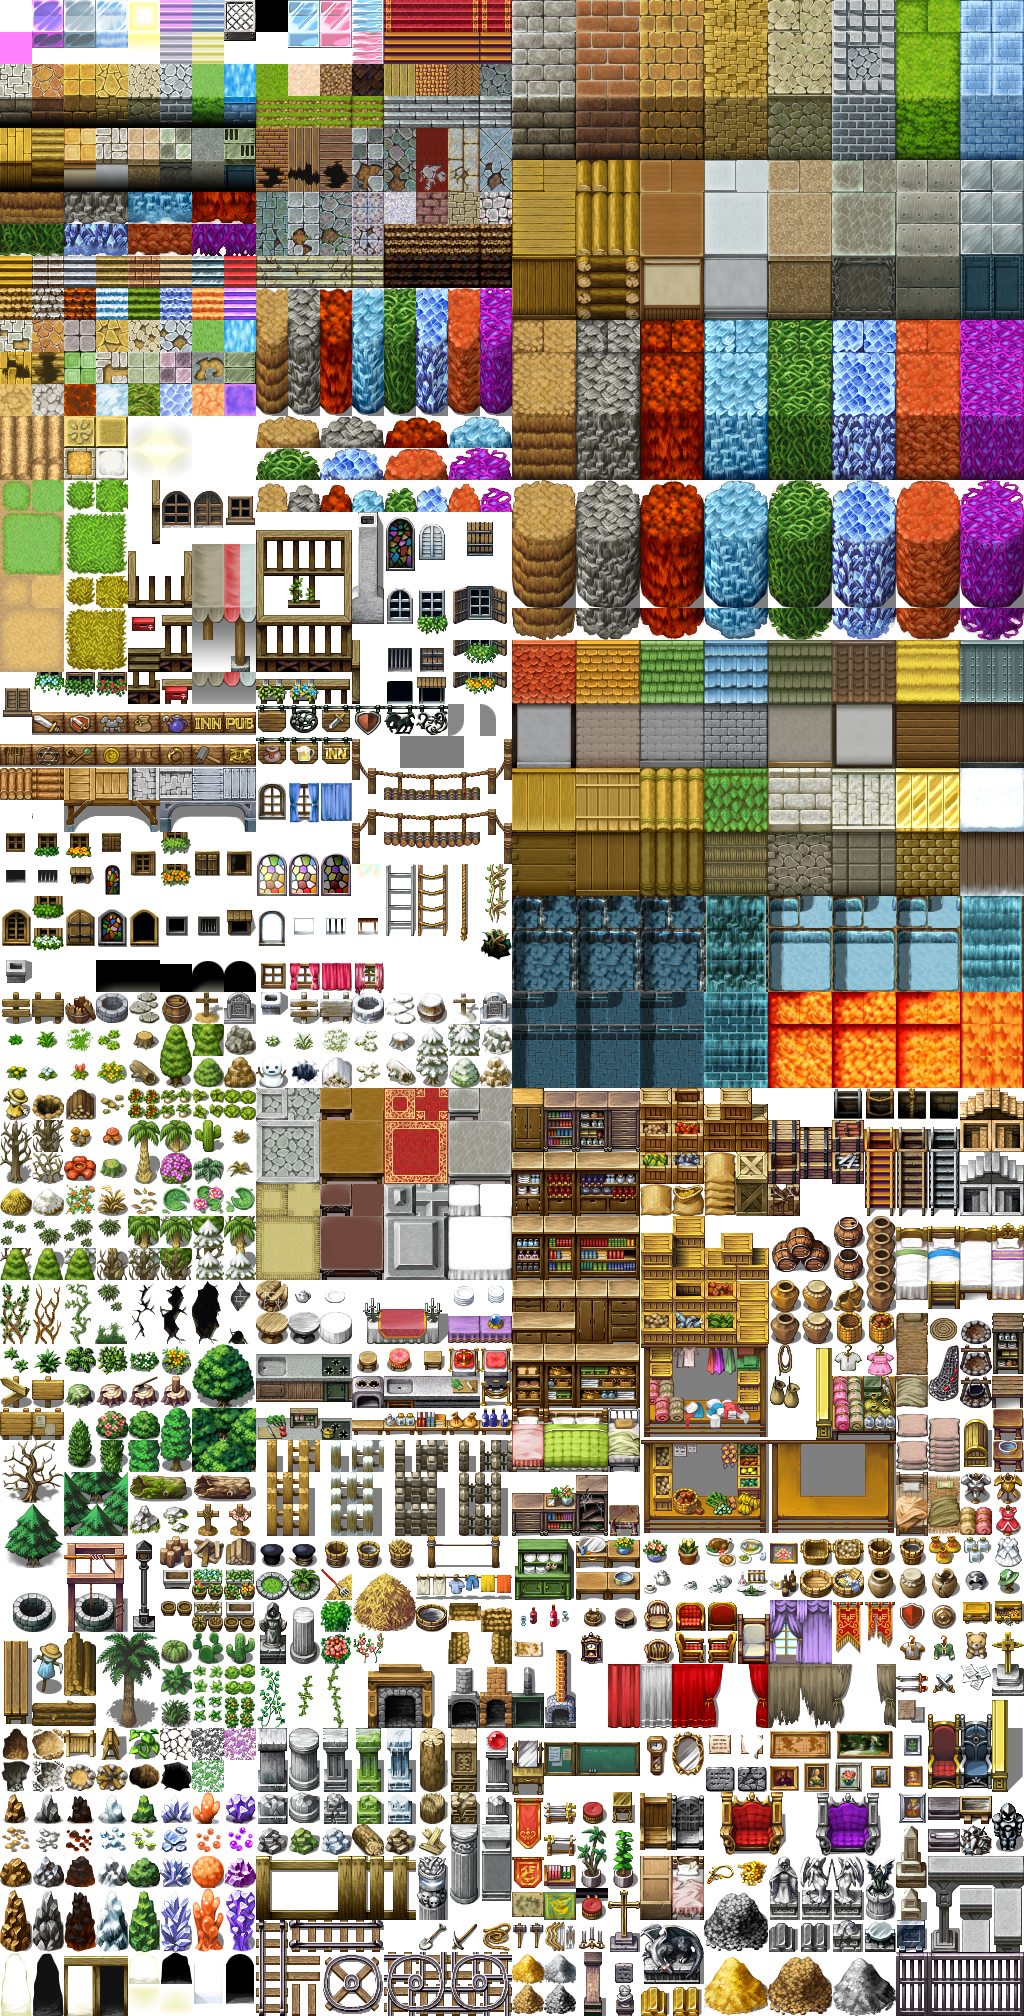 RPG Maker VX RTP Tileset by telles0808 on DeviantArt